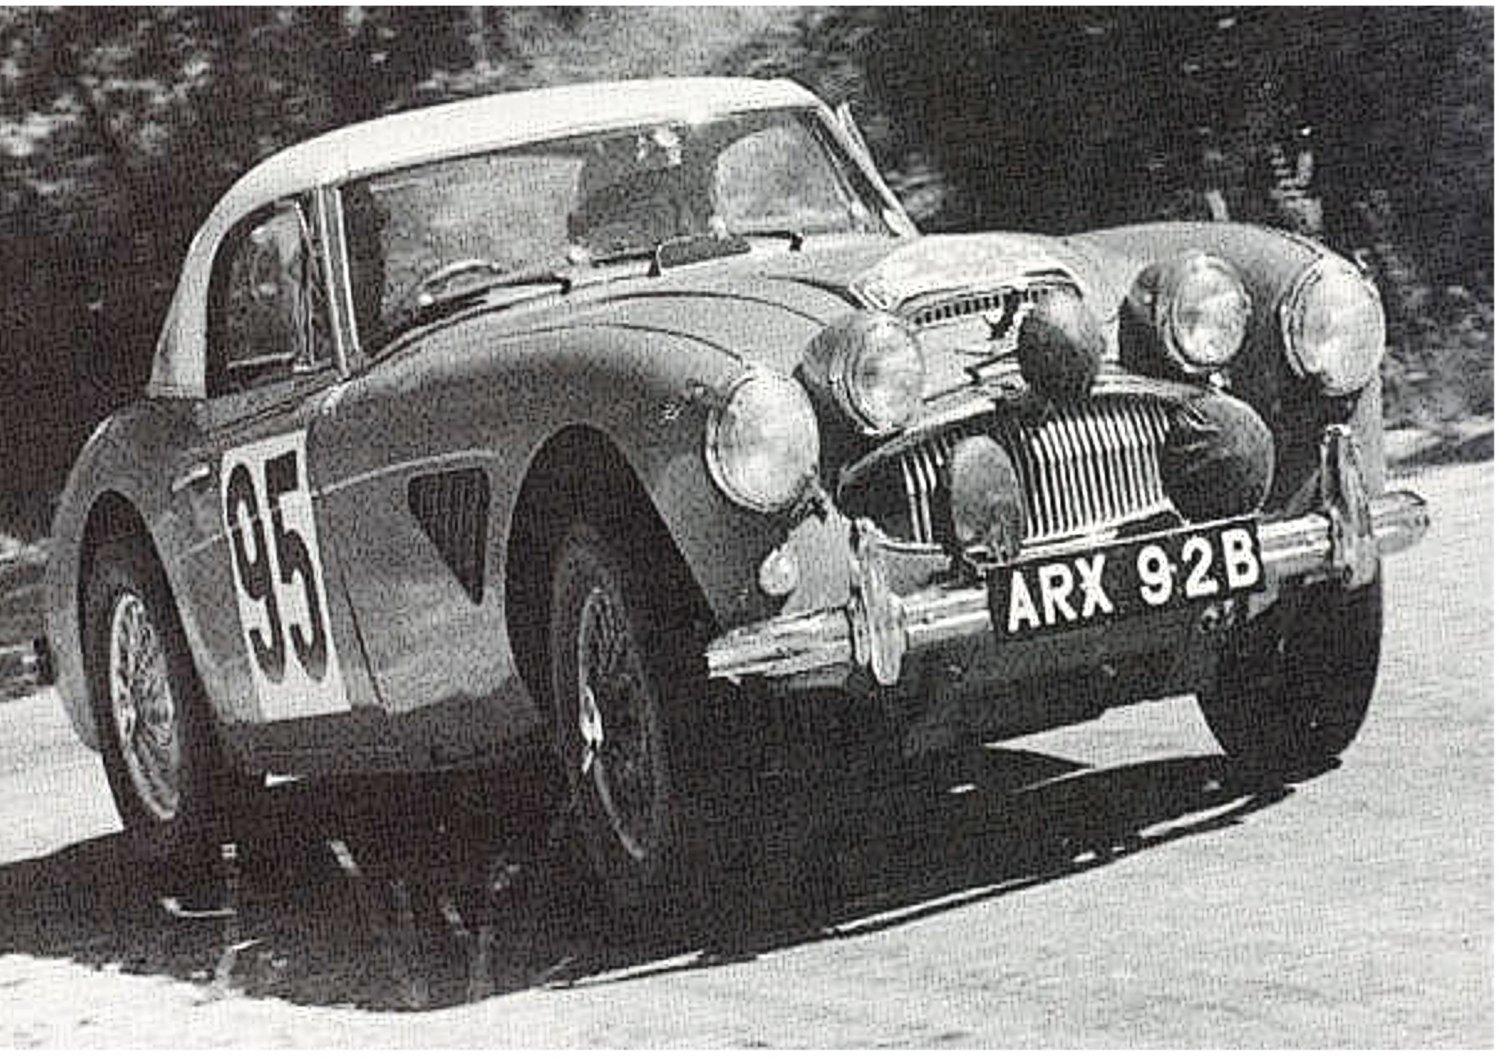 Pat Moss-Ann Wisdom Works Austin Healey 3.0 at 1960 Coupe des Alpes - Rally Car Photo Print